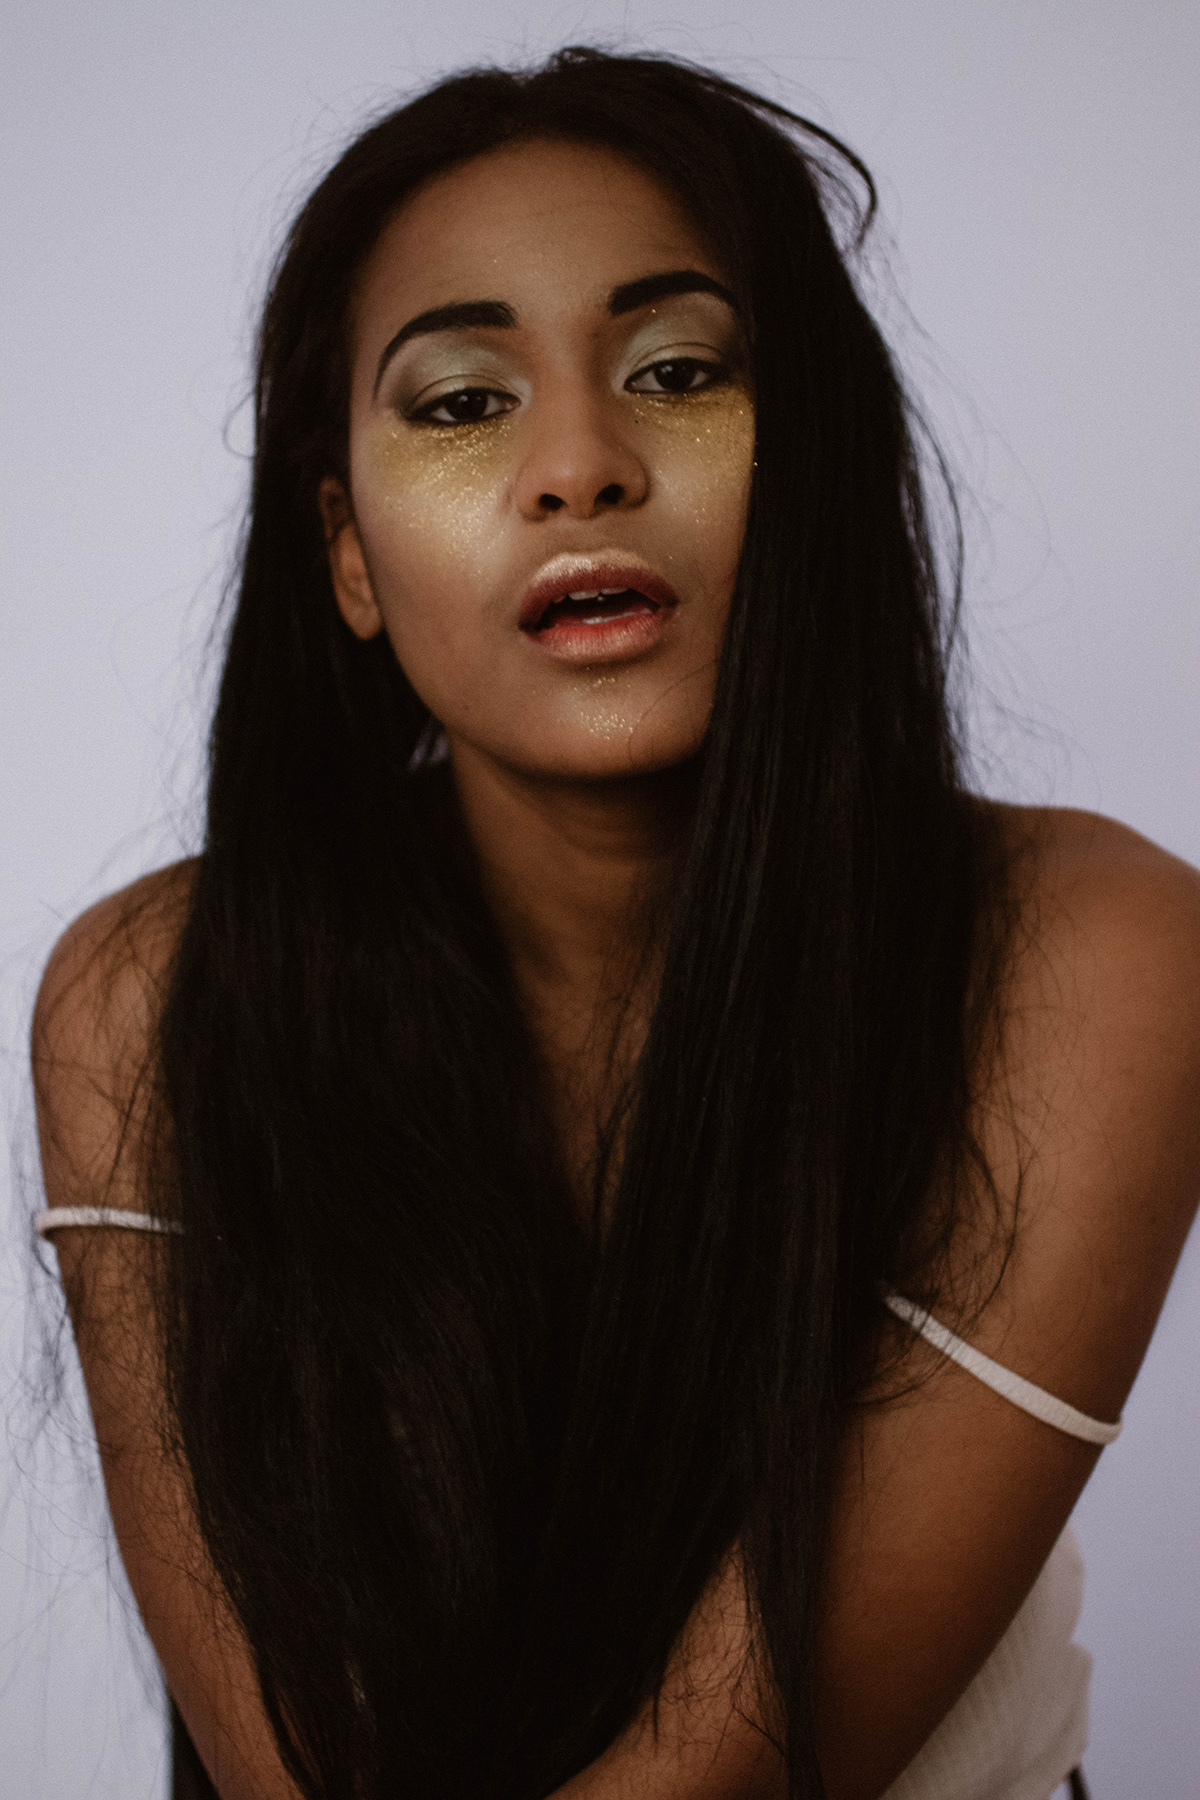 Syat Gold editorial by Marie-Eve Rose